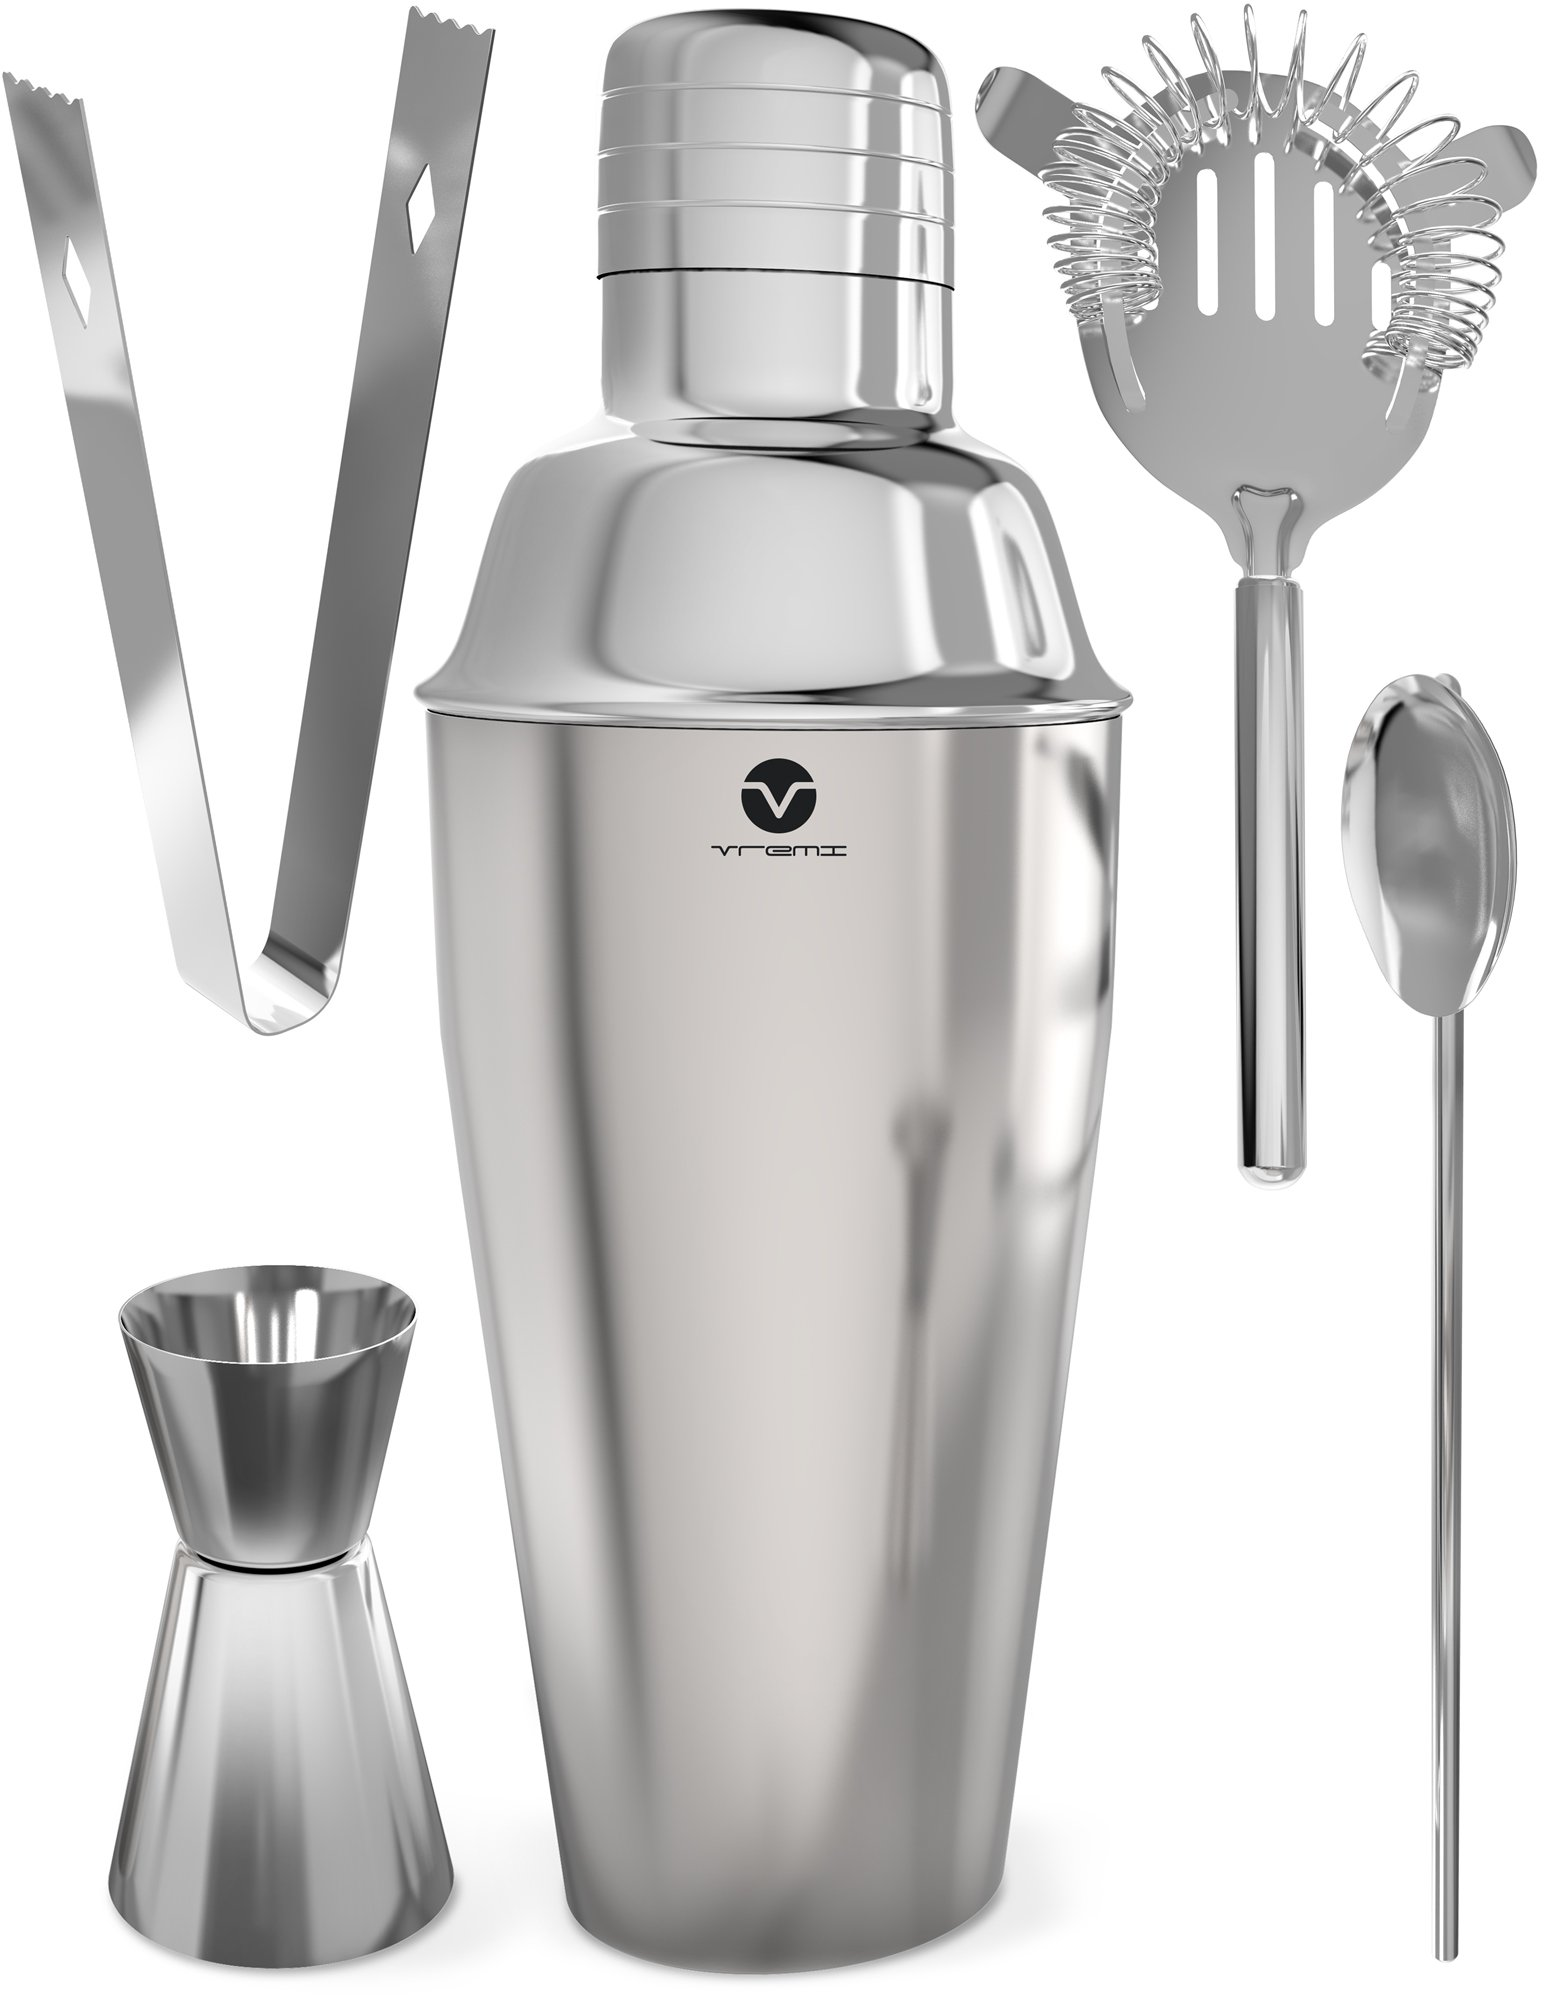 daac44cd523cf Details about Vremi Stainless Steel Cocktail Shaker Set - 5 Piece Bartender  Kit with Martini